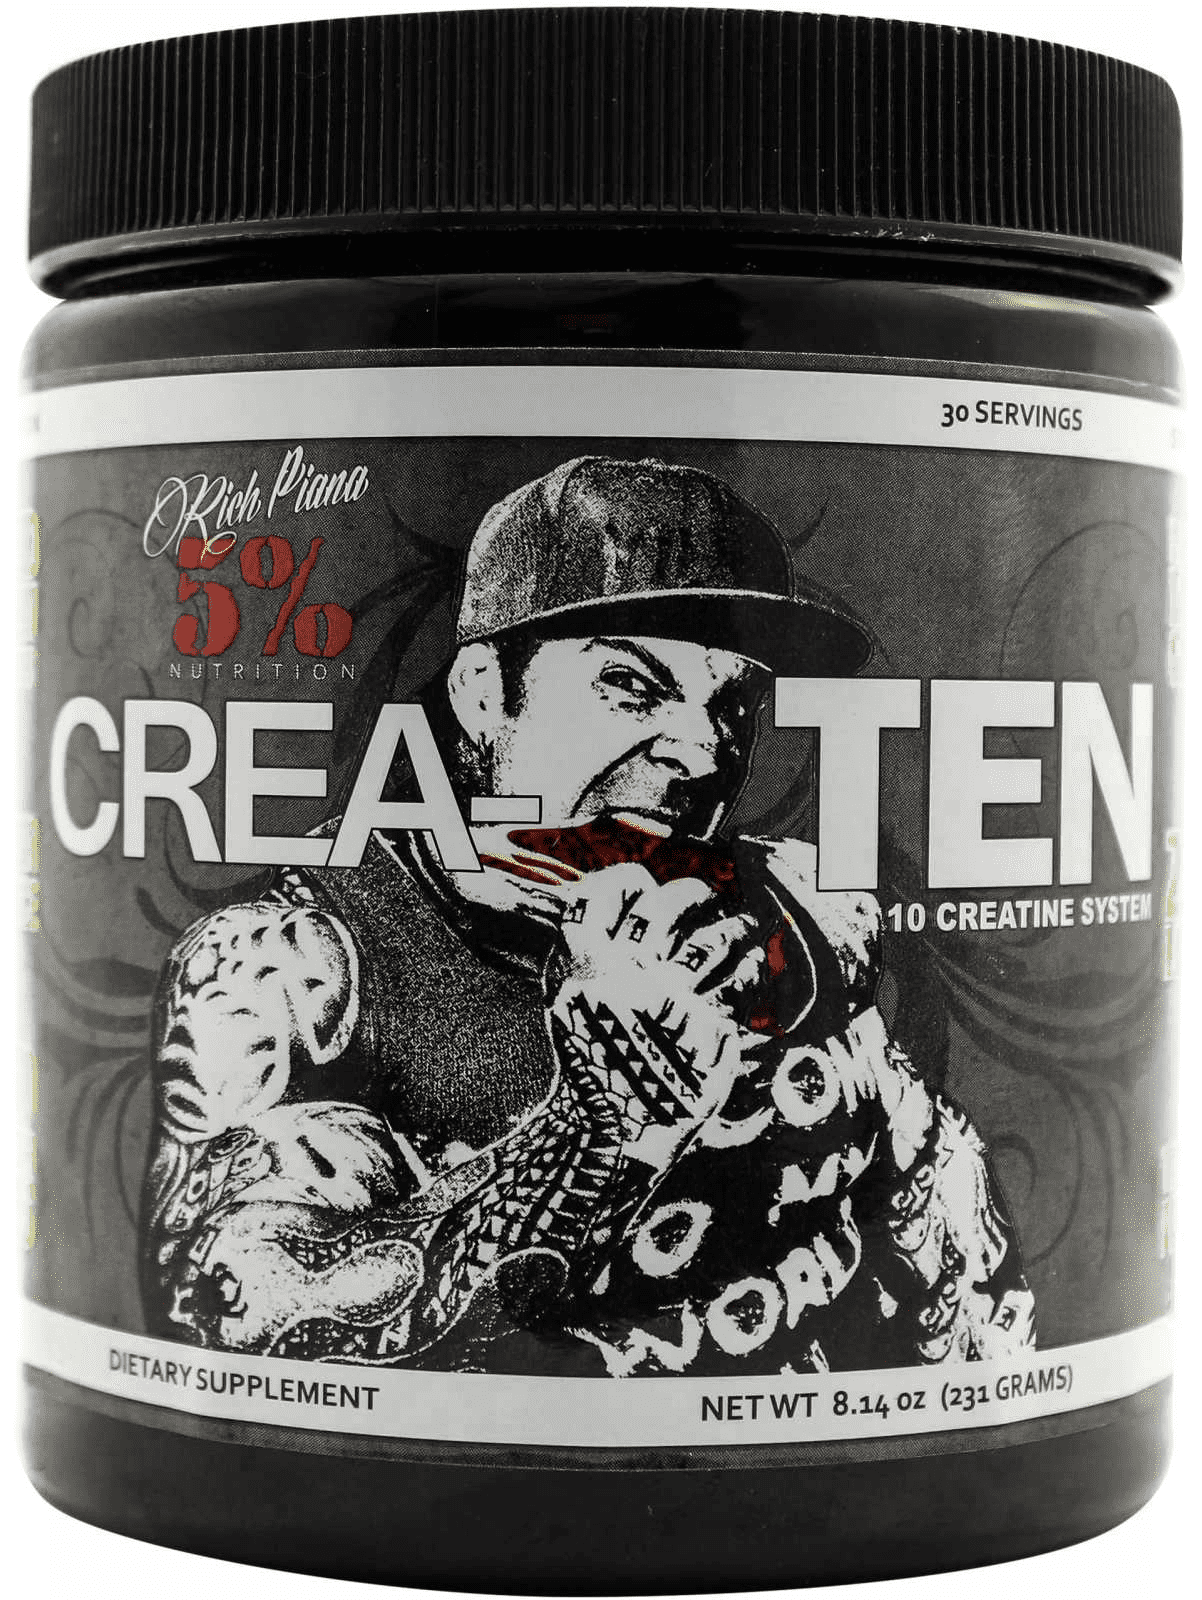 Rich Piana Crea-Ten by 5% Nutrition